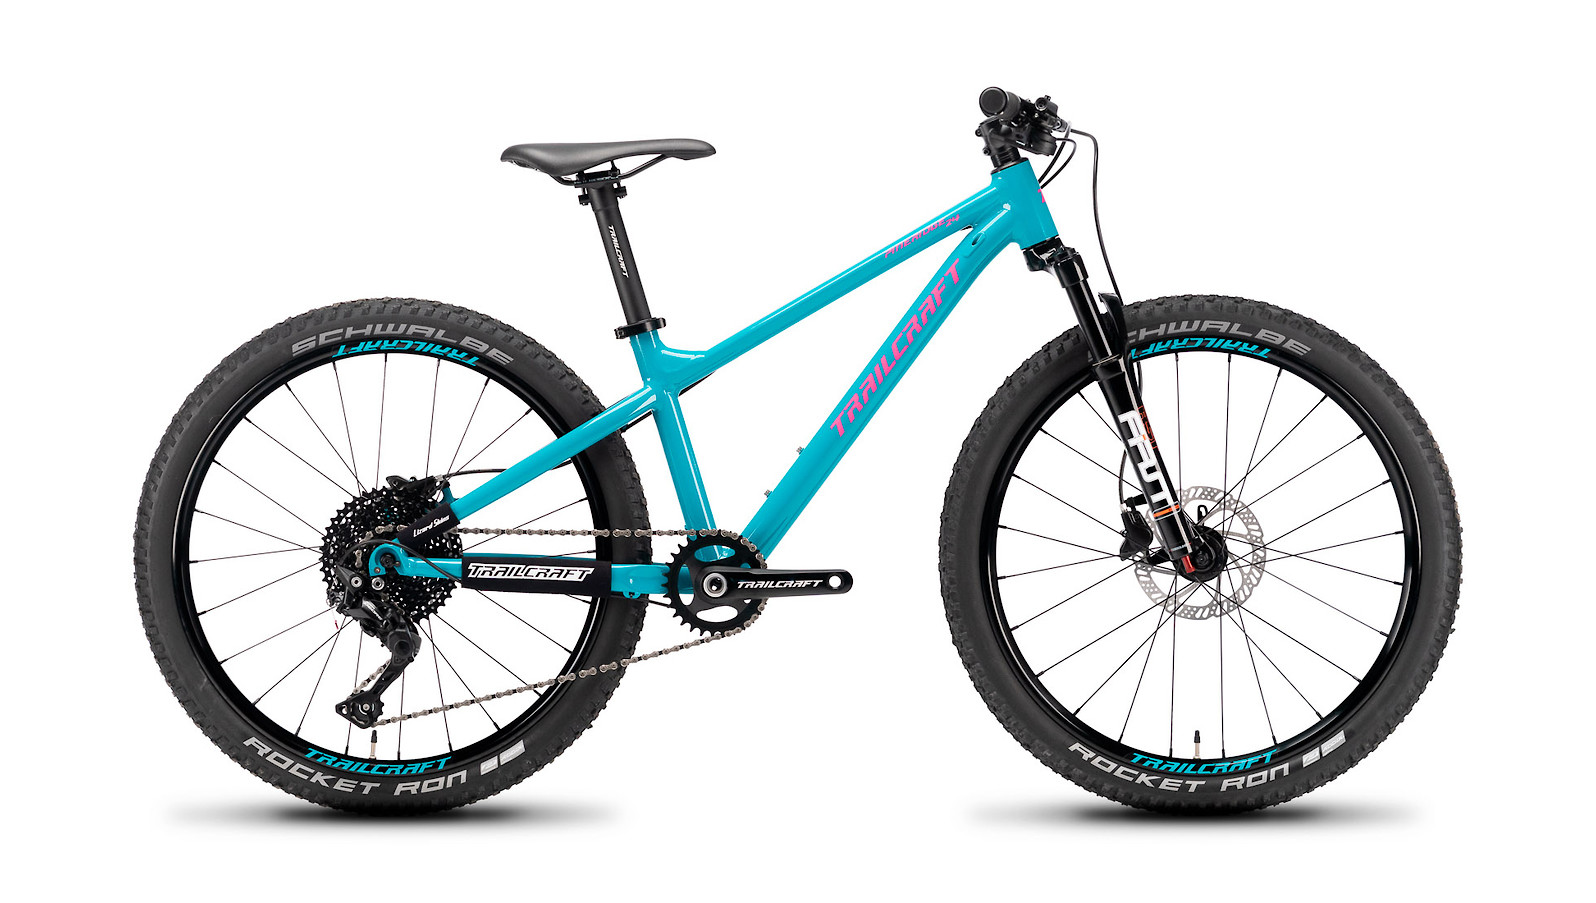 2020 Trailcraft Pineridge 24 Dirt Distancing Build (Turquoise; custom build shown)